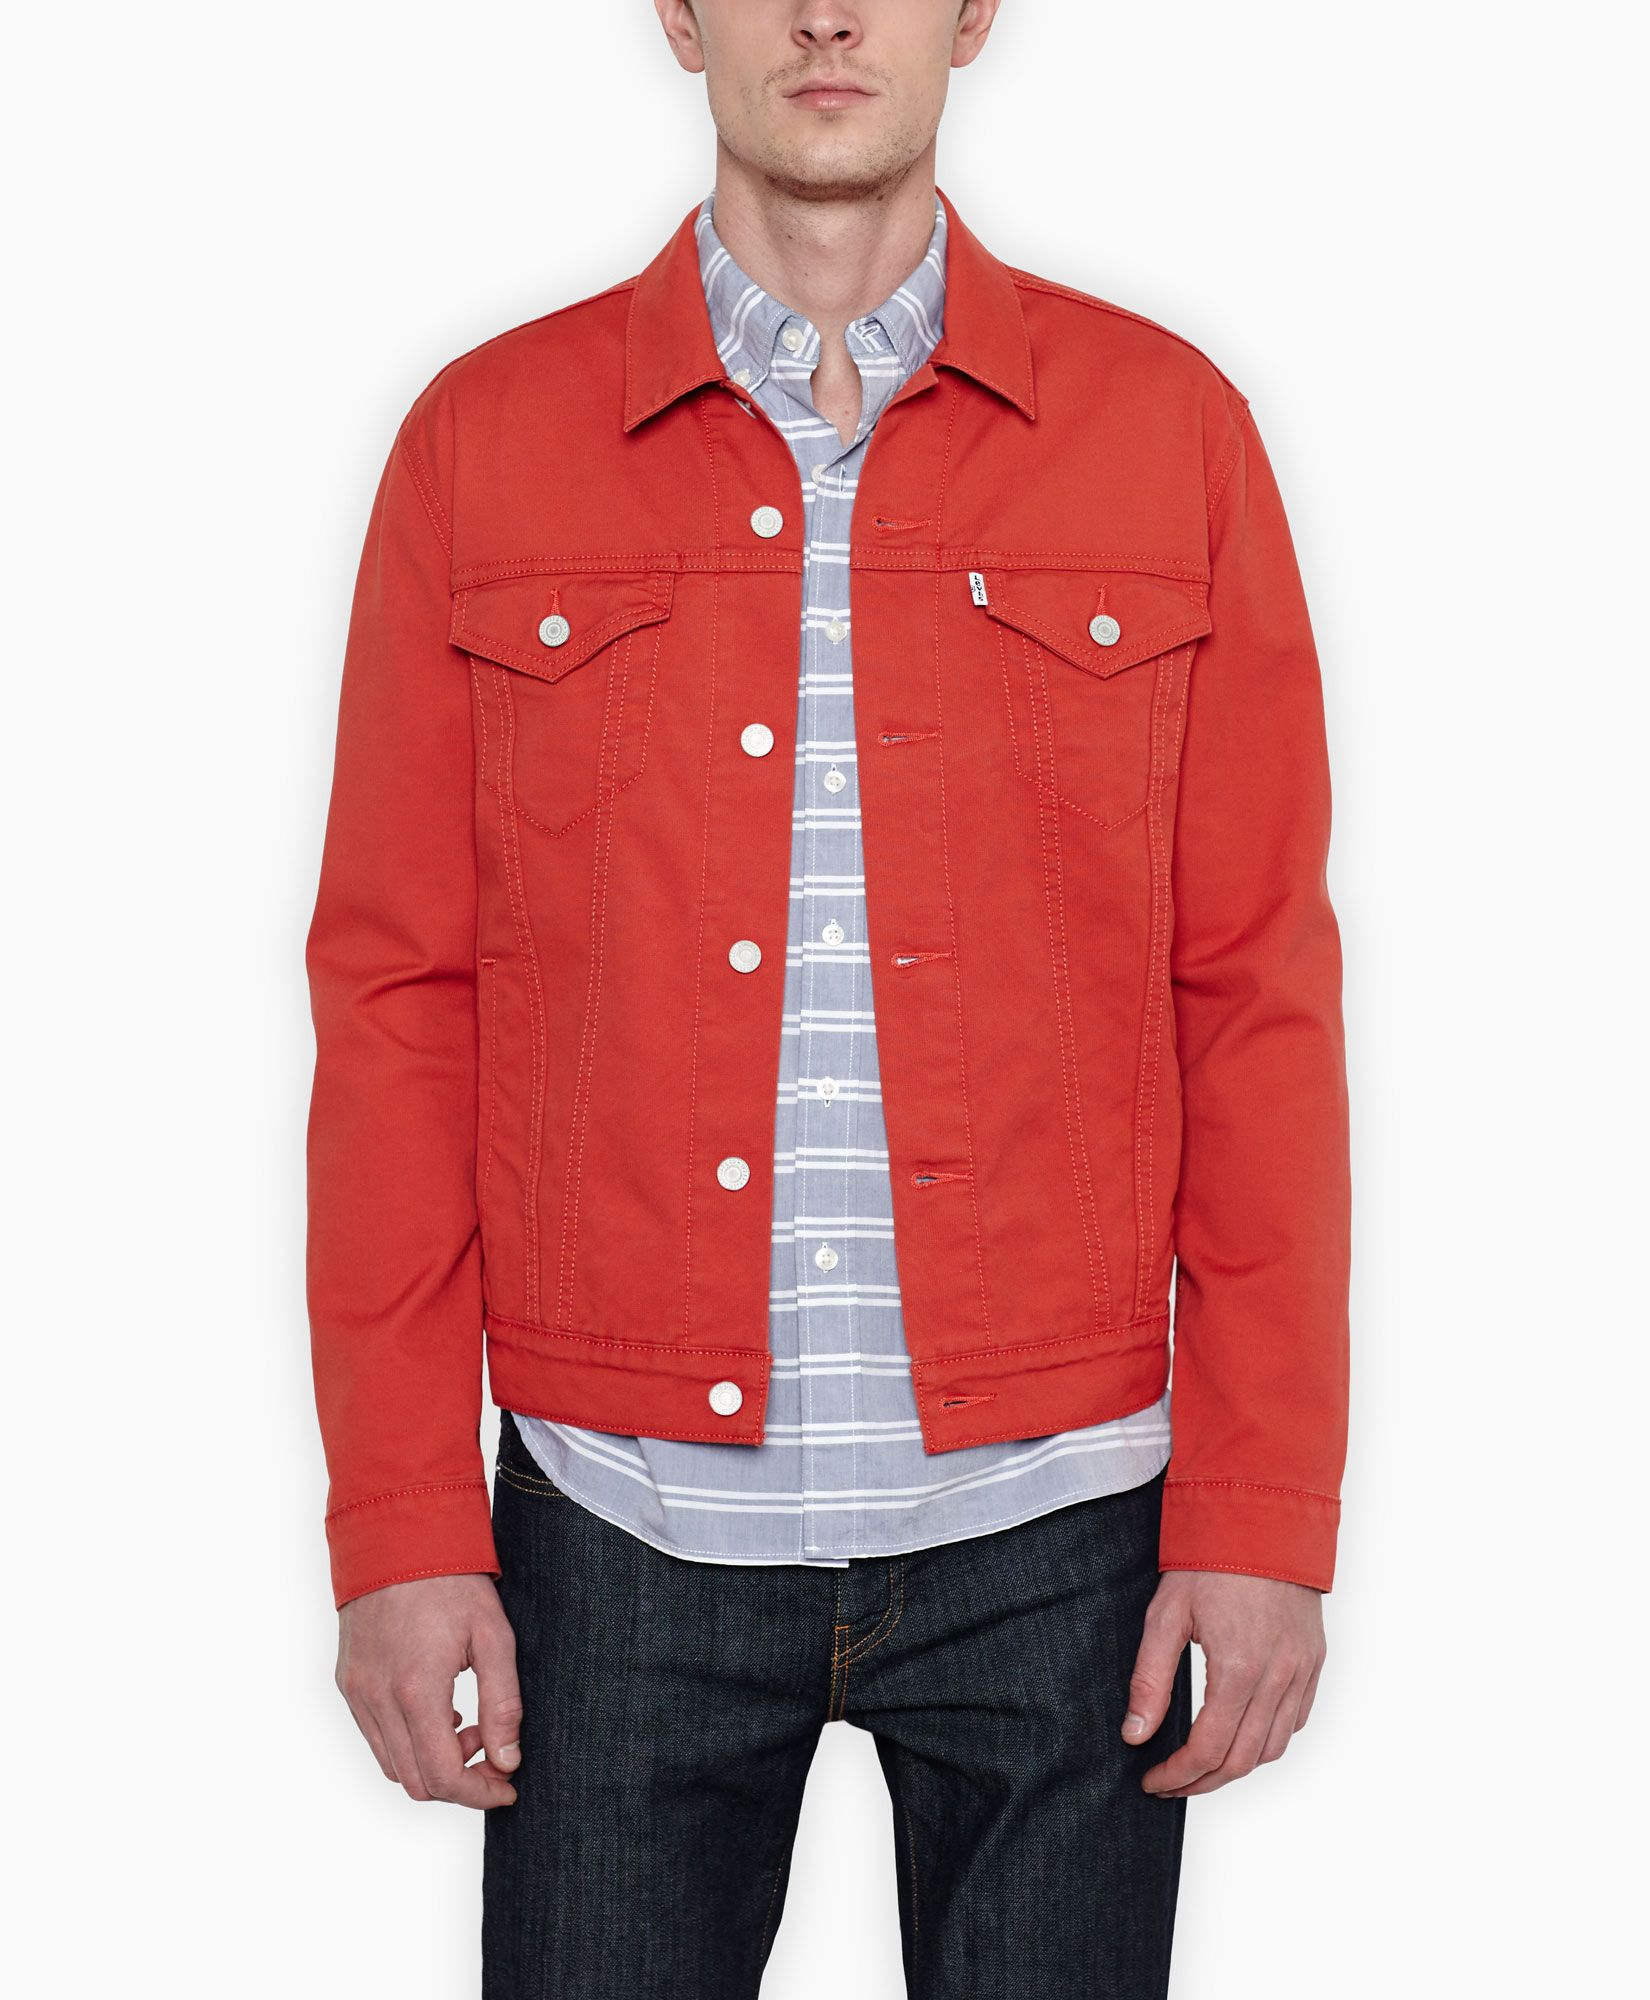 Levi's The Trucker Jacket - Red Rock Bedford Cord - The Trucker ...